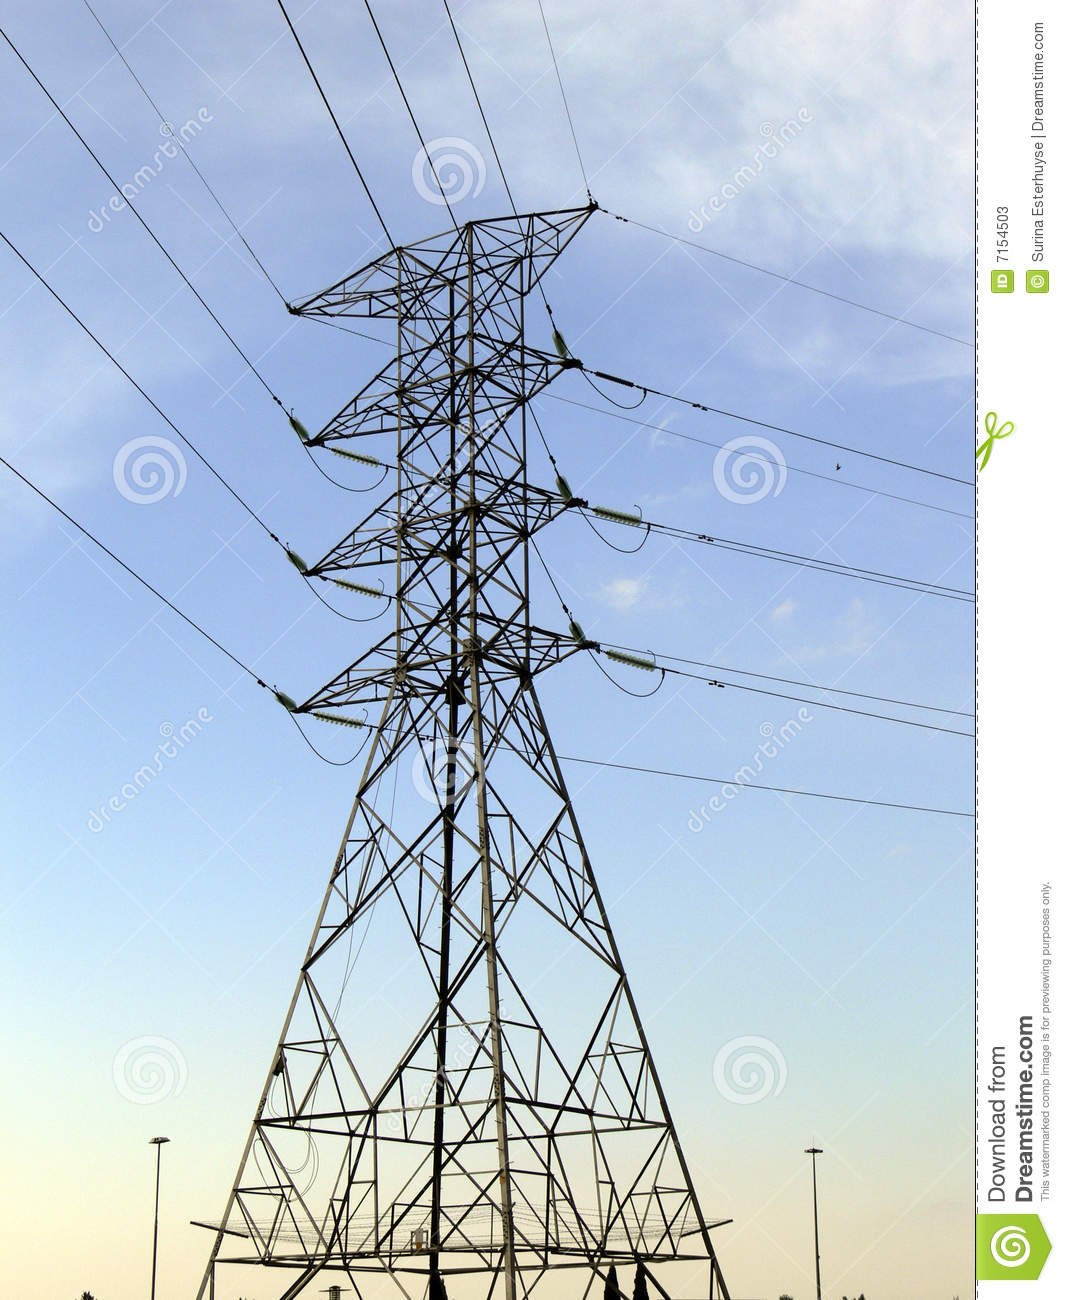 Computer Tower Cable : Power cable tower stock photos image